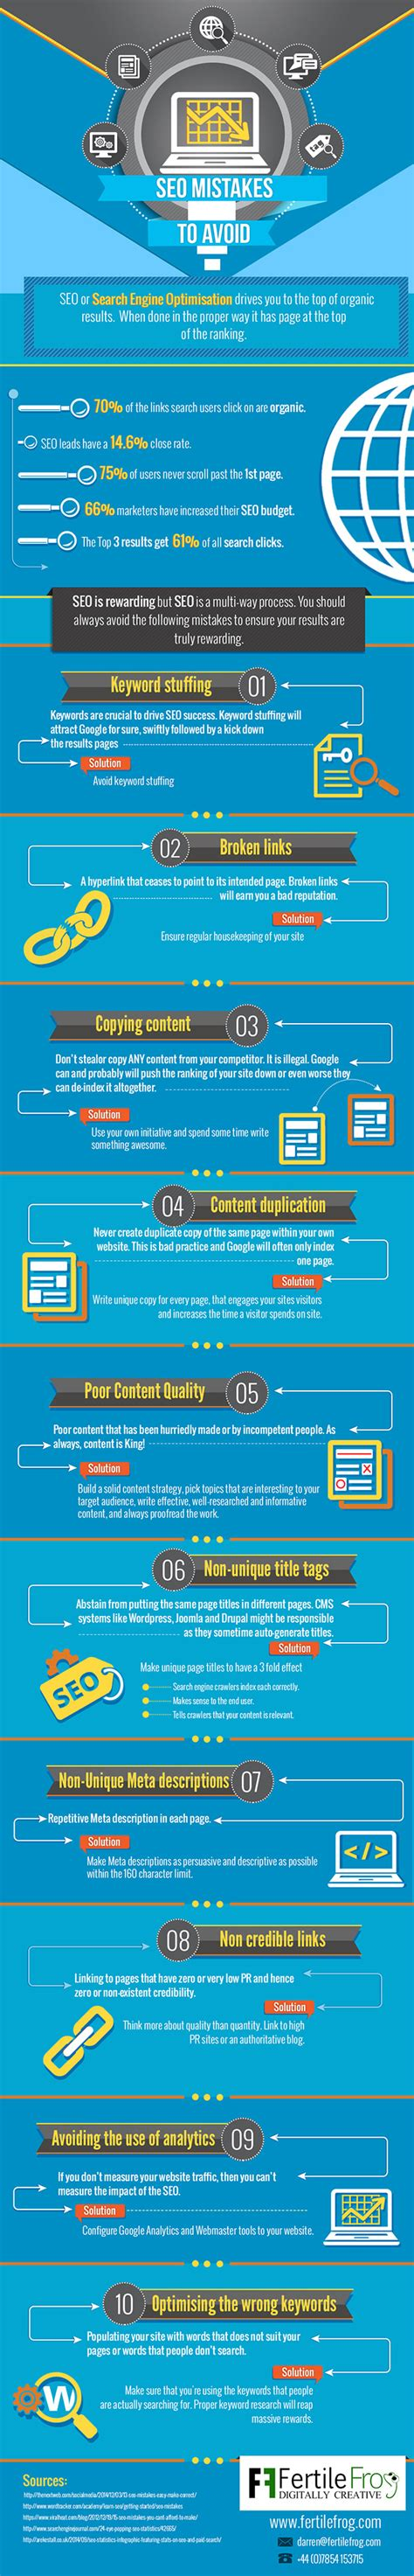 weekly infographic seo mistakes to avoid search